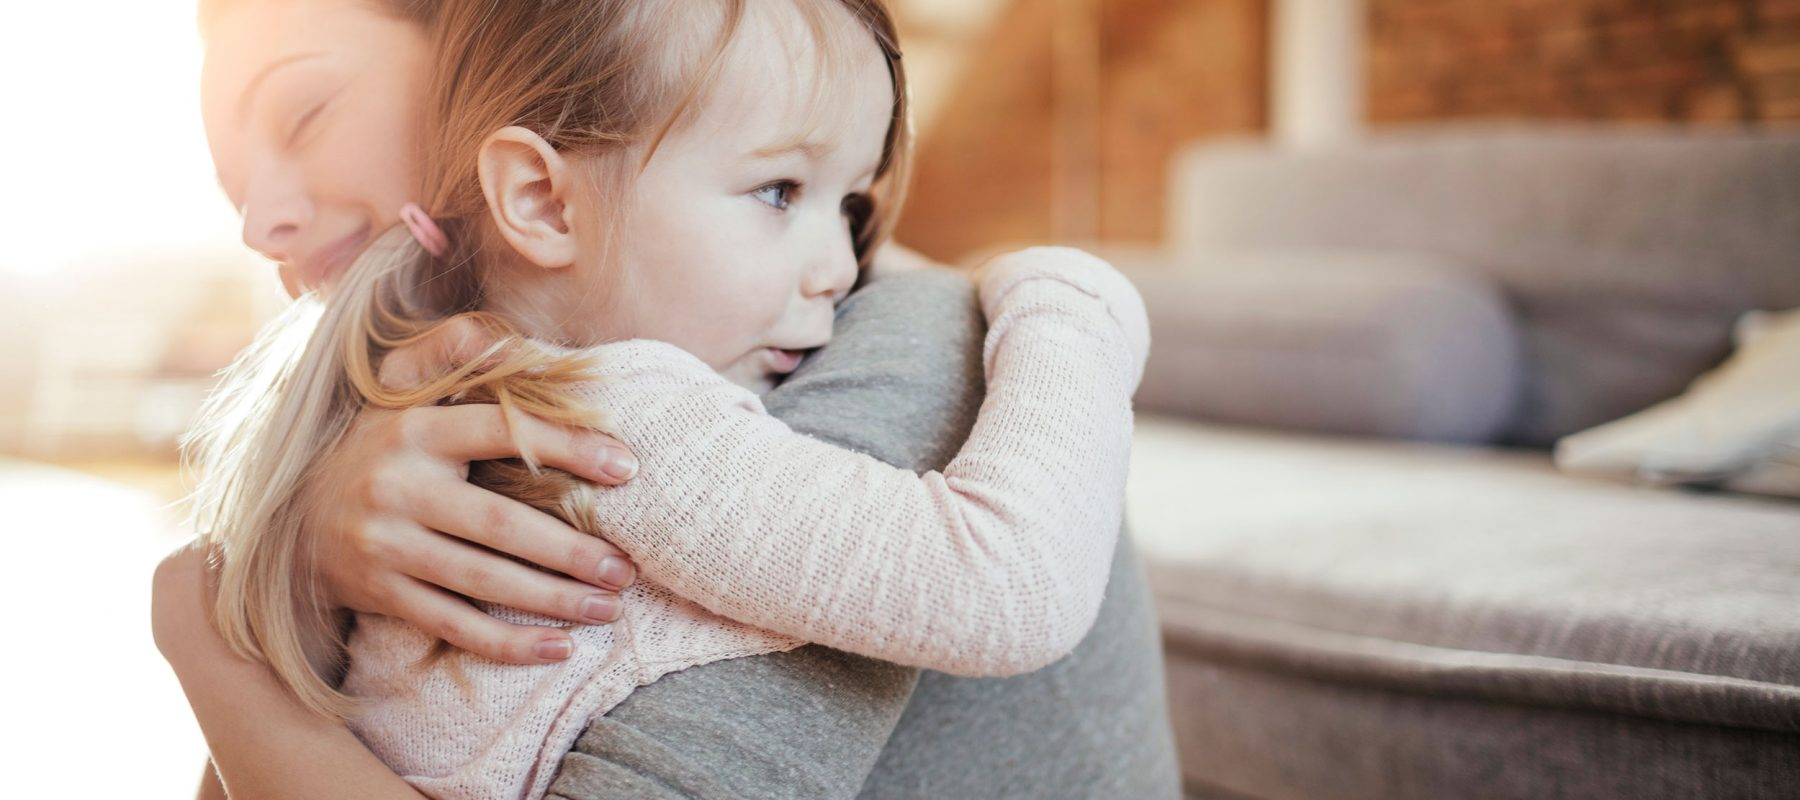 Helping Little Ones with Big Emotions